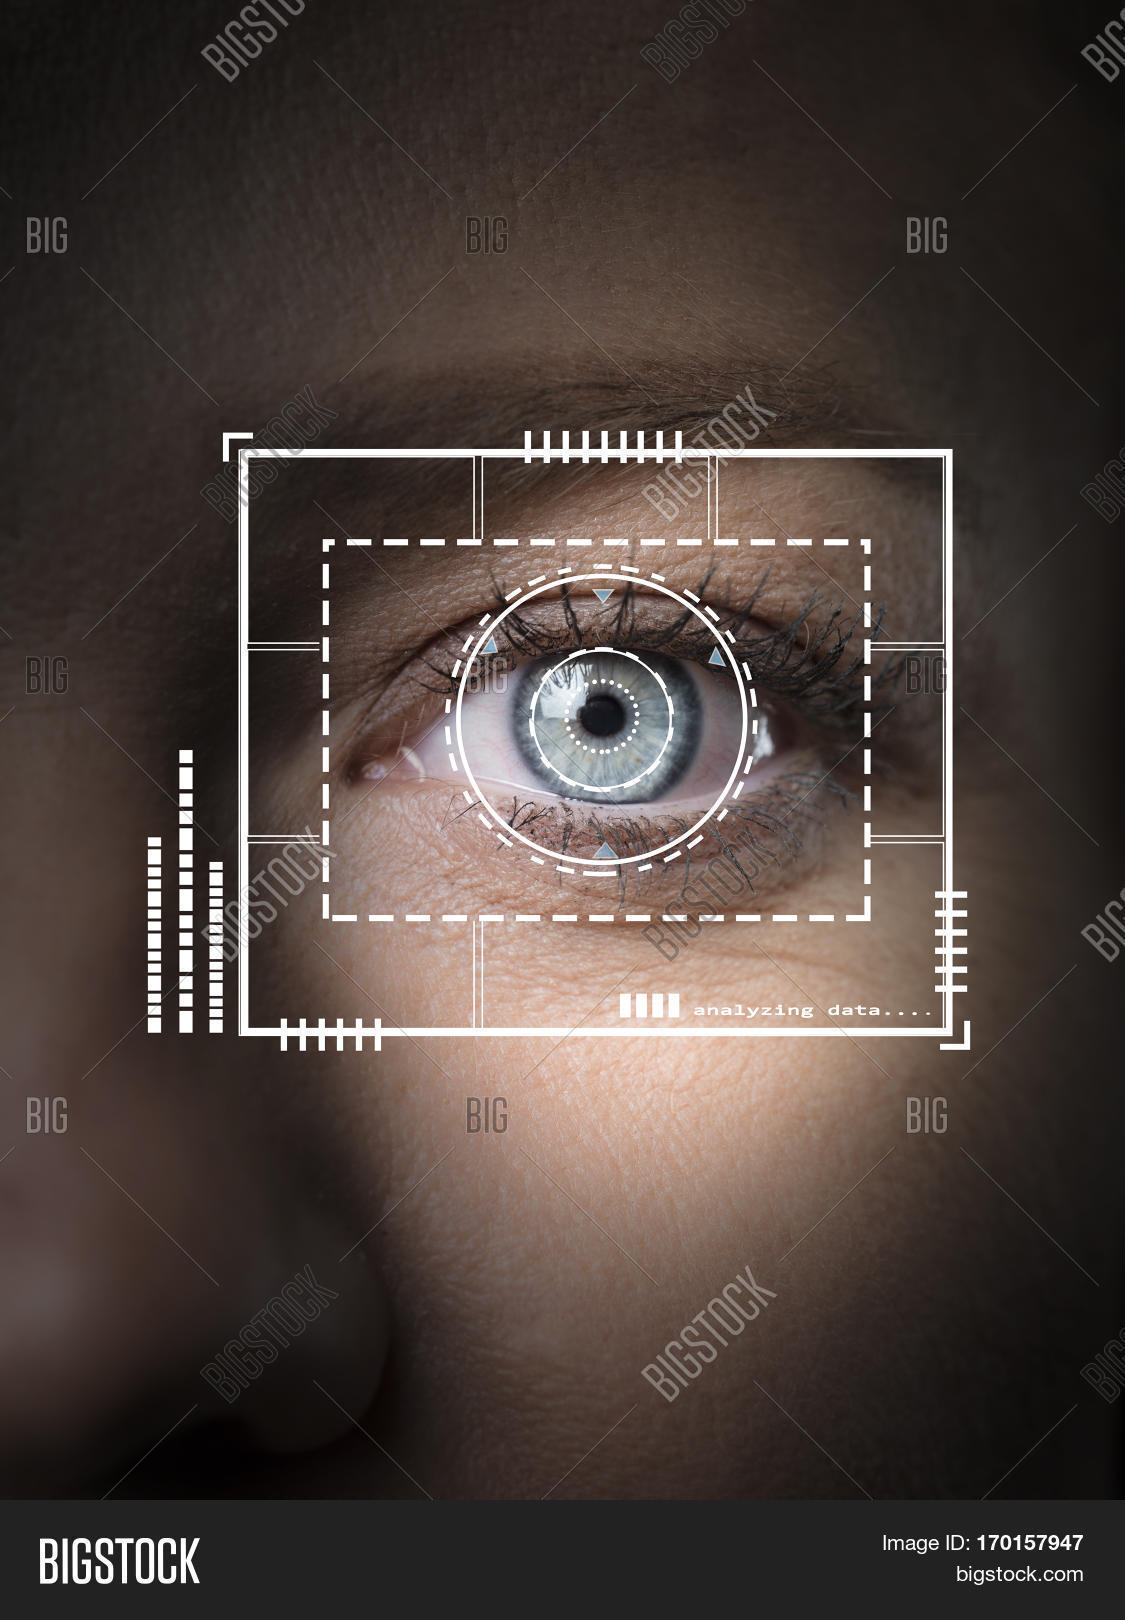 access,background,biometric,business,circuit,closeup,communication,computer,concept,cyber,data,digital,display,electronic,eye,focus,future,futuristic,graphic,high,human,identification,identity,image,interface,iris,laser,light,macro,man,pass,passport,password,protection,retina,scan,scanner,scanning,science,screen,screening,secure,security,tech,technology,verification,view,vision,visual